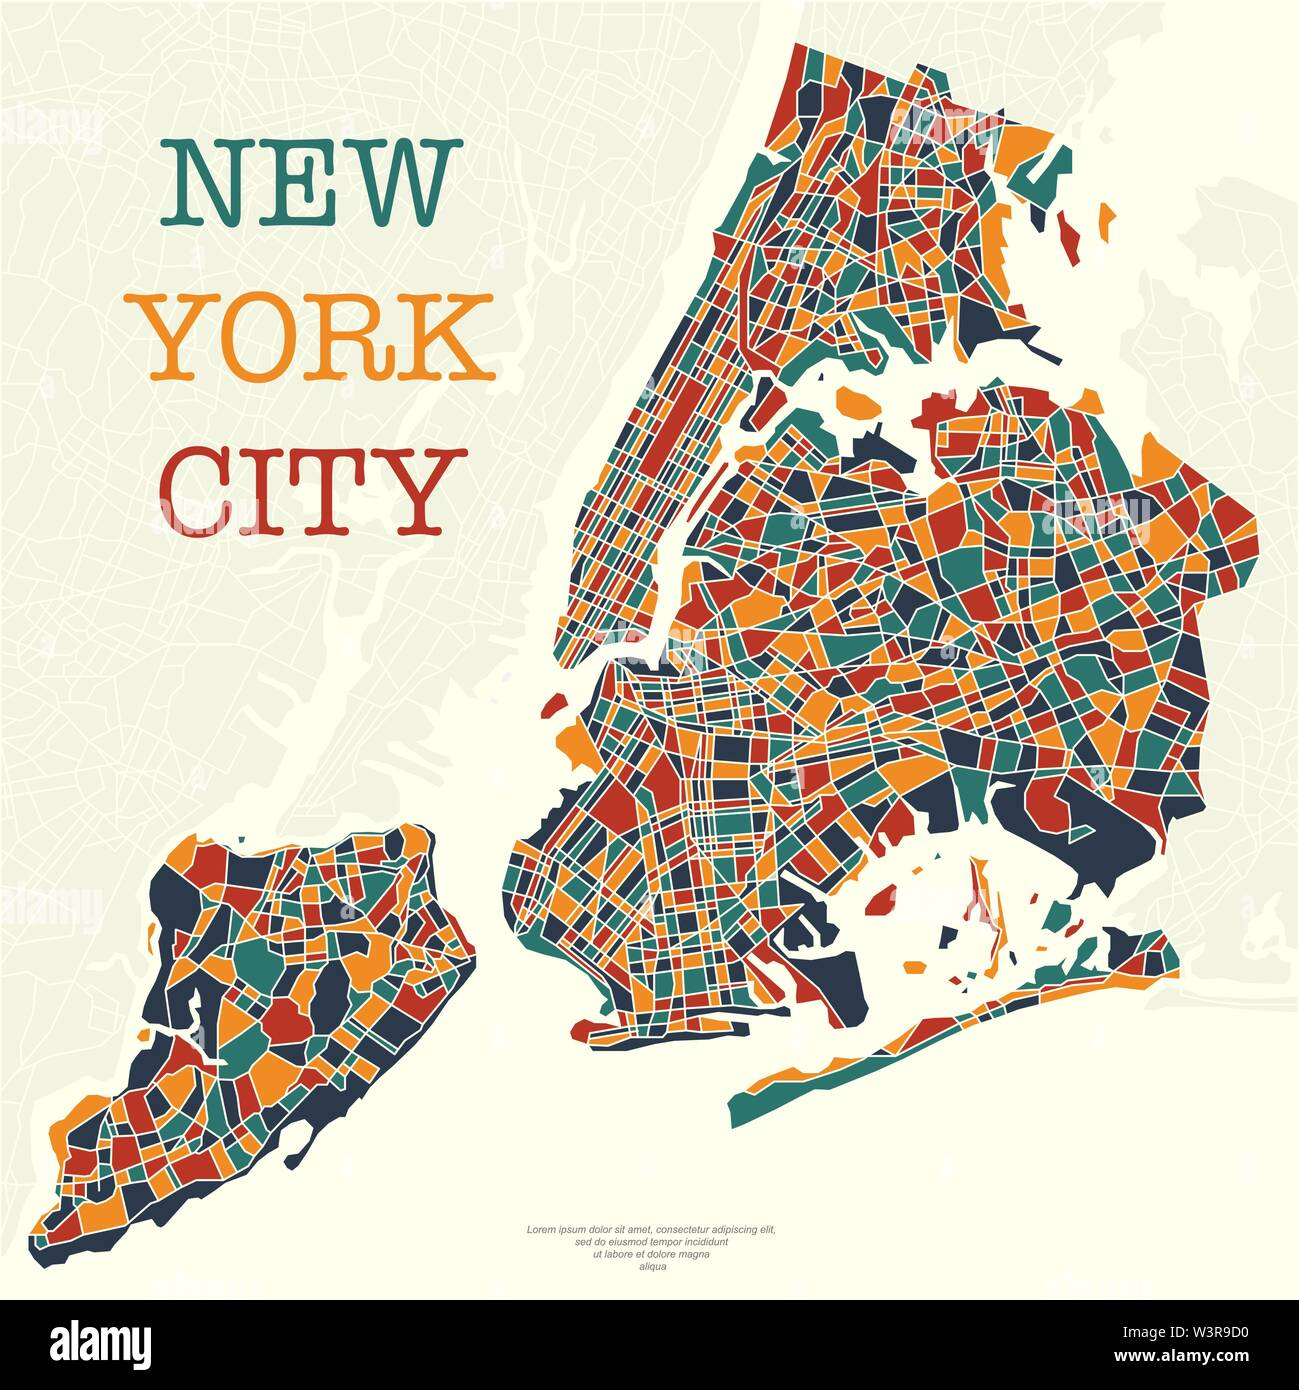 New York city map different colors and sample text - Stock Vector